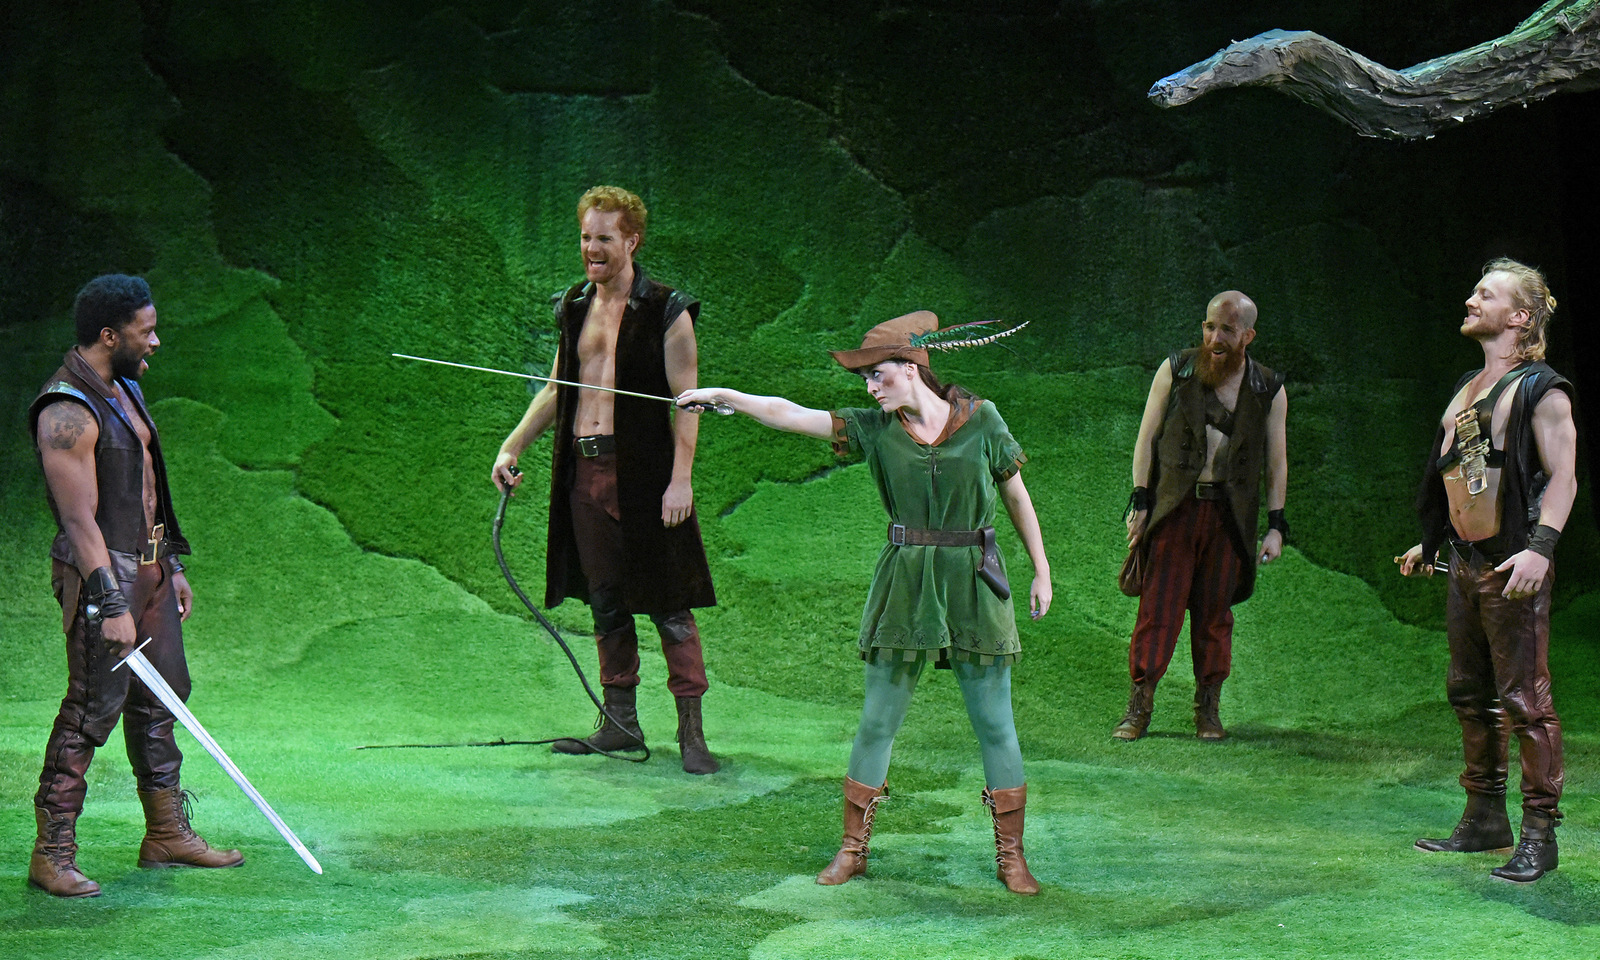 Vesturport and The Wallis' The Heart of Robin Hood. Pictured (l-r): Luke Forbes, Kasey Mahaffy, Christina Bennett Lind, Jeremy Crawford, and Sam Meader. Photo credit: Kevin Parry for The Wallis.